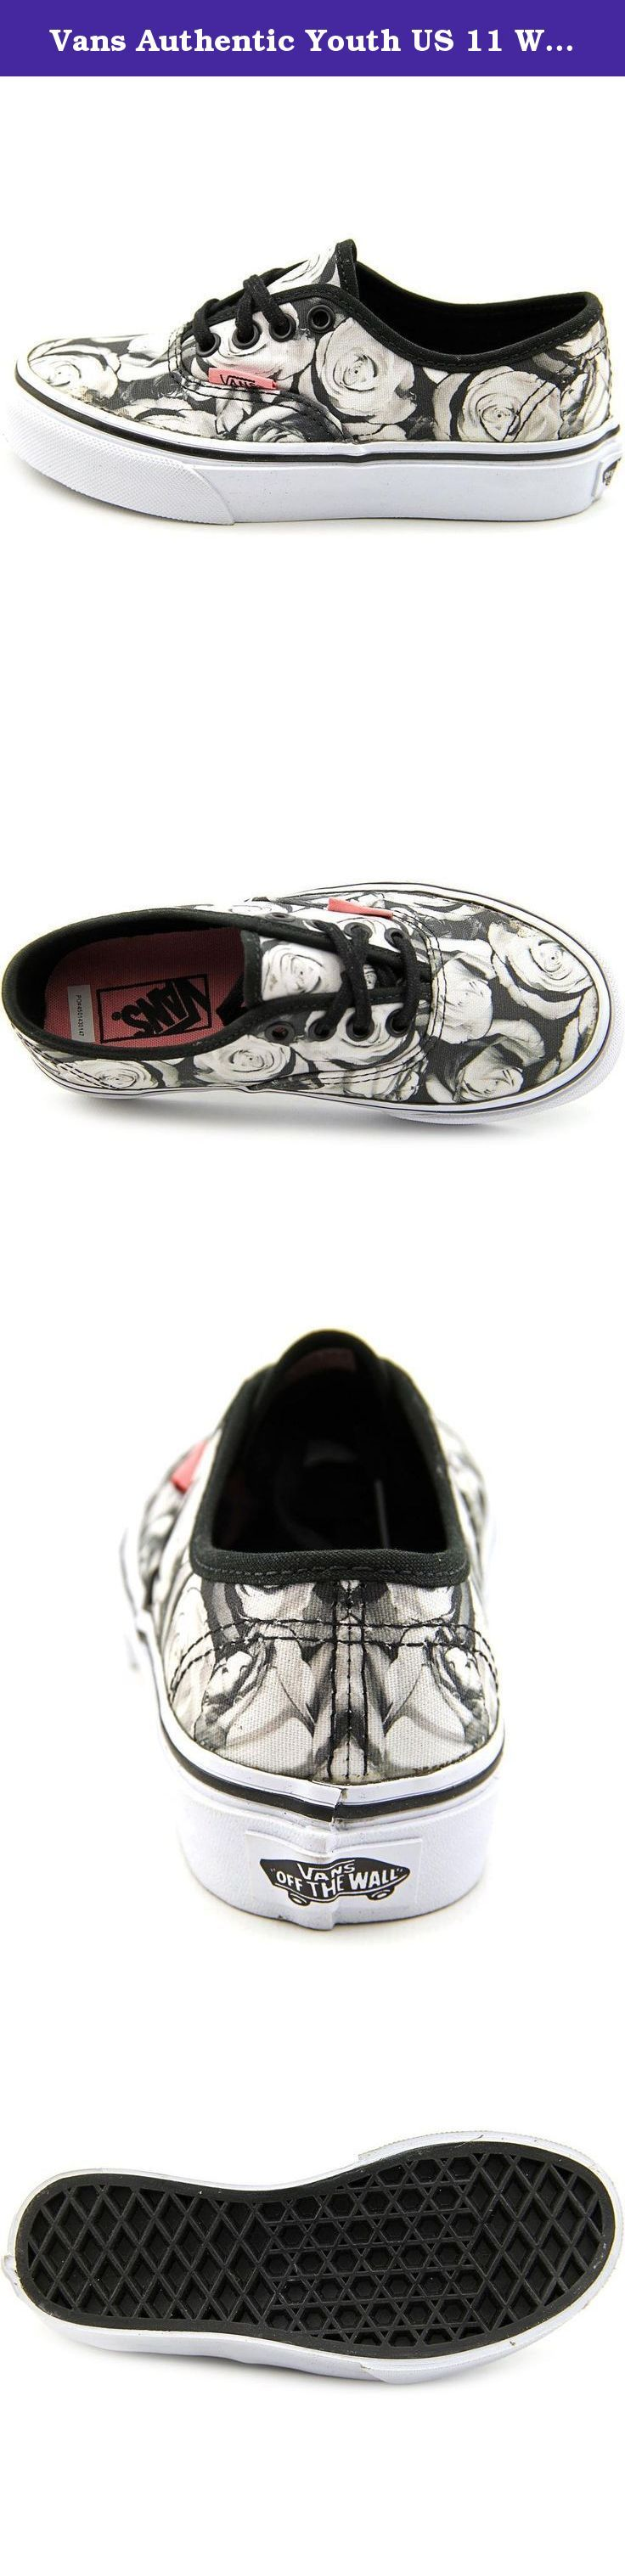 Vans Authentic Youth US 11 White Athletic Sneakers. The Vans Authentic Casual Shoes feature a Canvas upper with a . The Man-Made outsole lends lasting traction and wear.